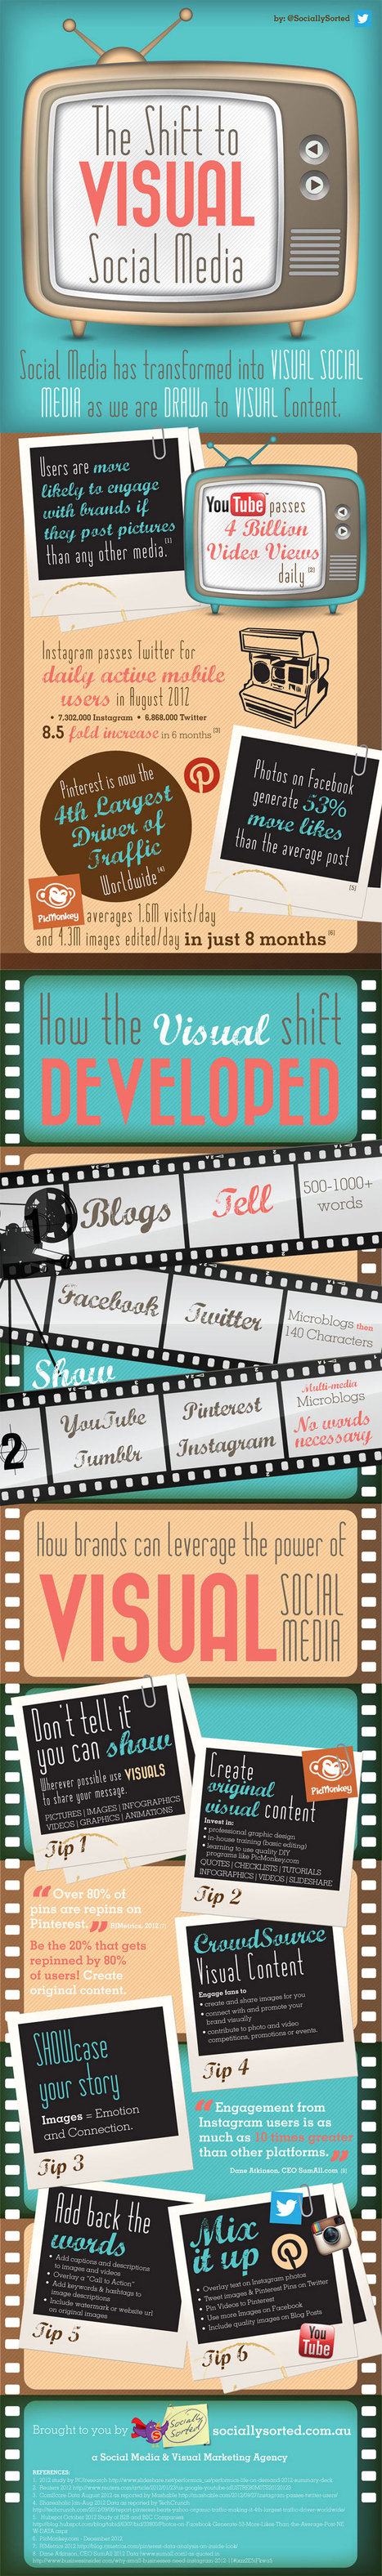 Imagery in Social Media  & How to Leverage Visual Content [infographic] | SocialSizzlers | Scoop.it